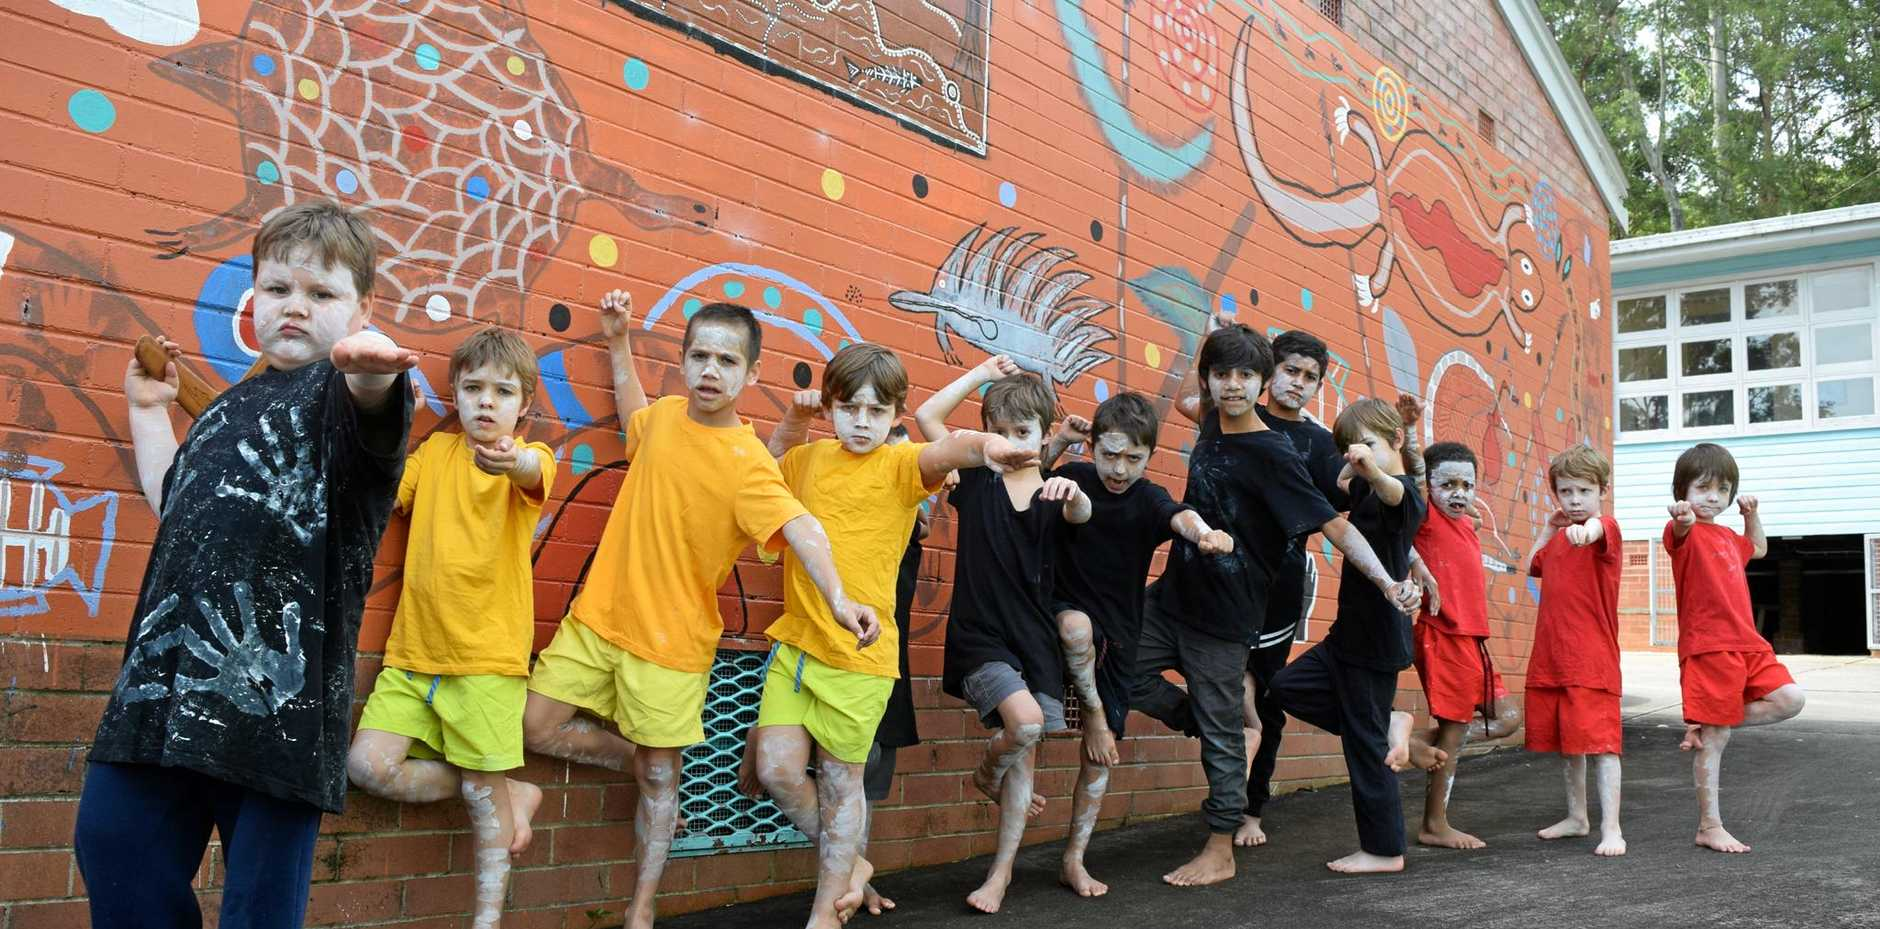 Students at Albert Park Public School in Lismore performed a dance as part of NAIDOC week.